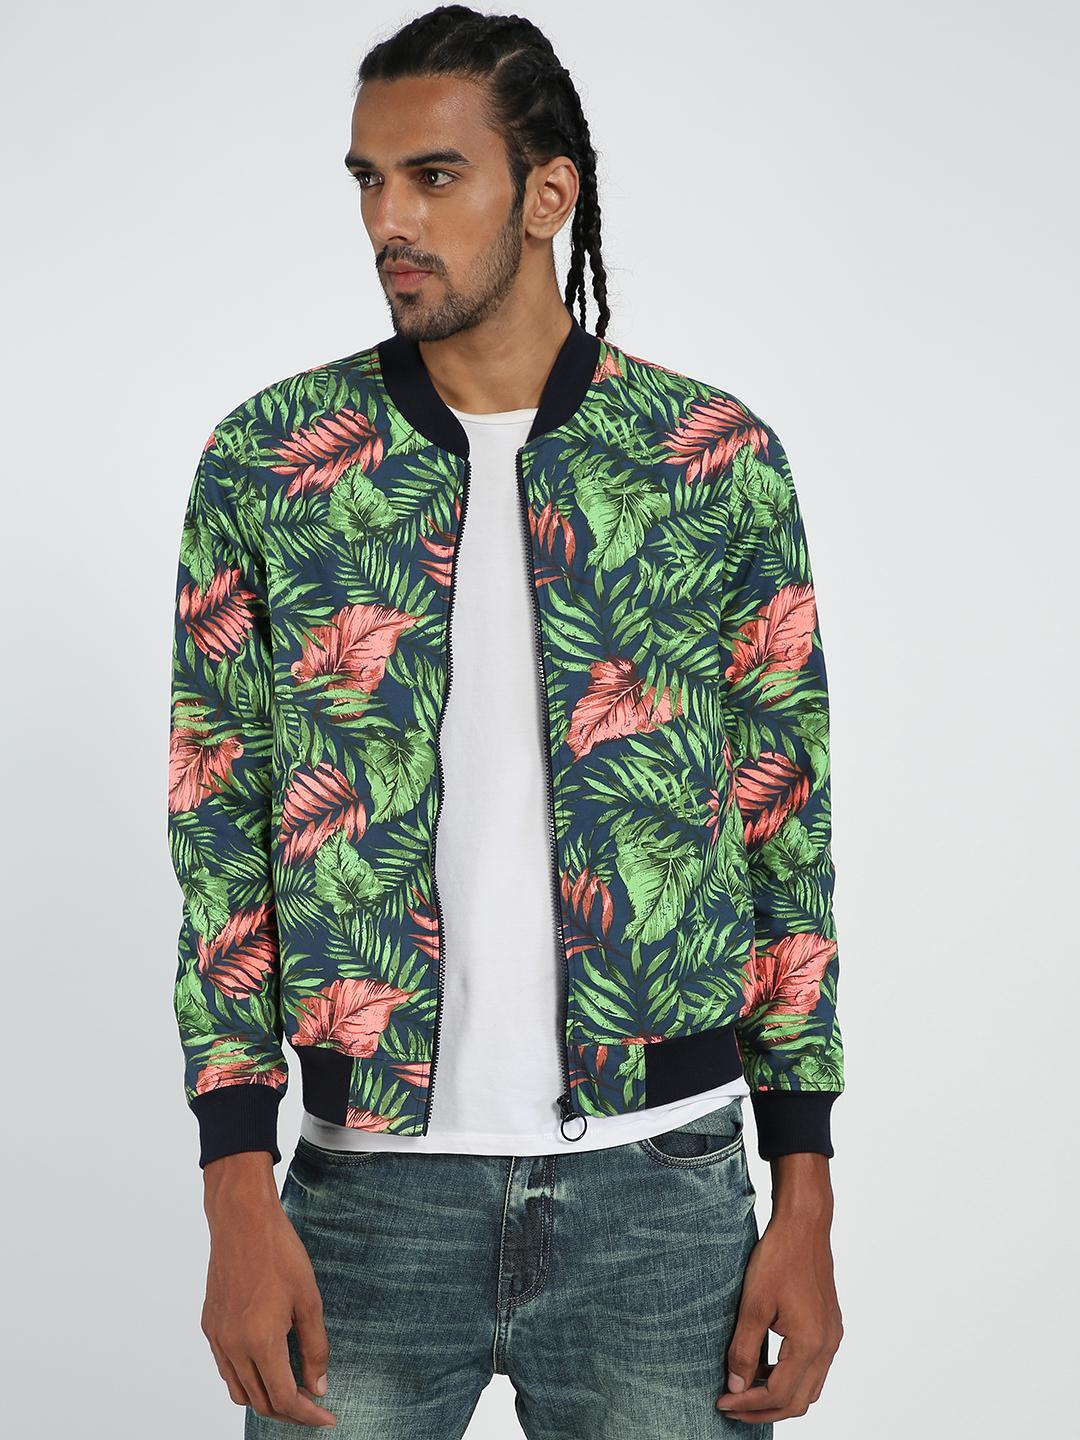 TRUE RUG Multi Palm Leaf Print Bomber Jacket 1